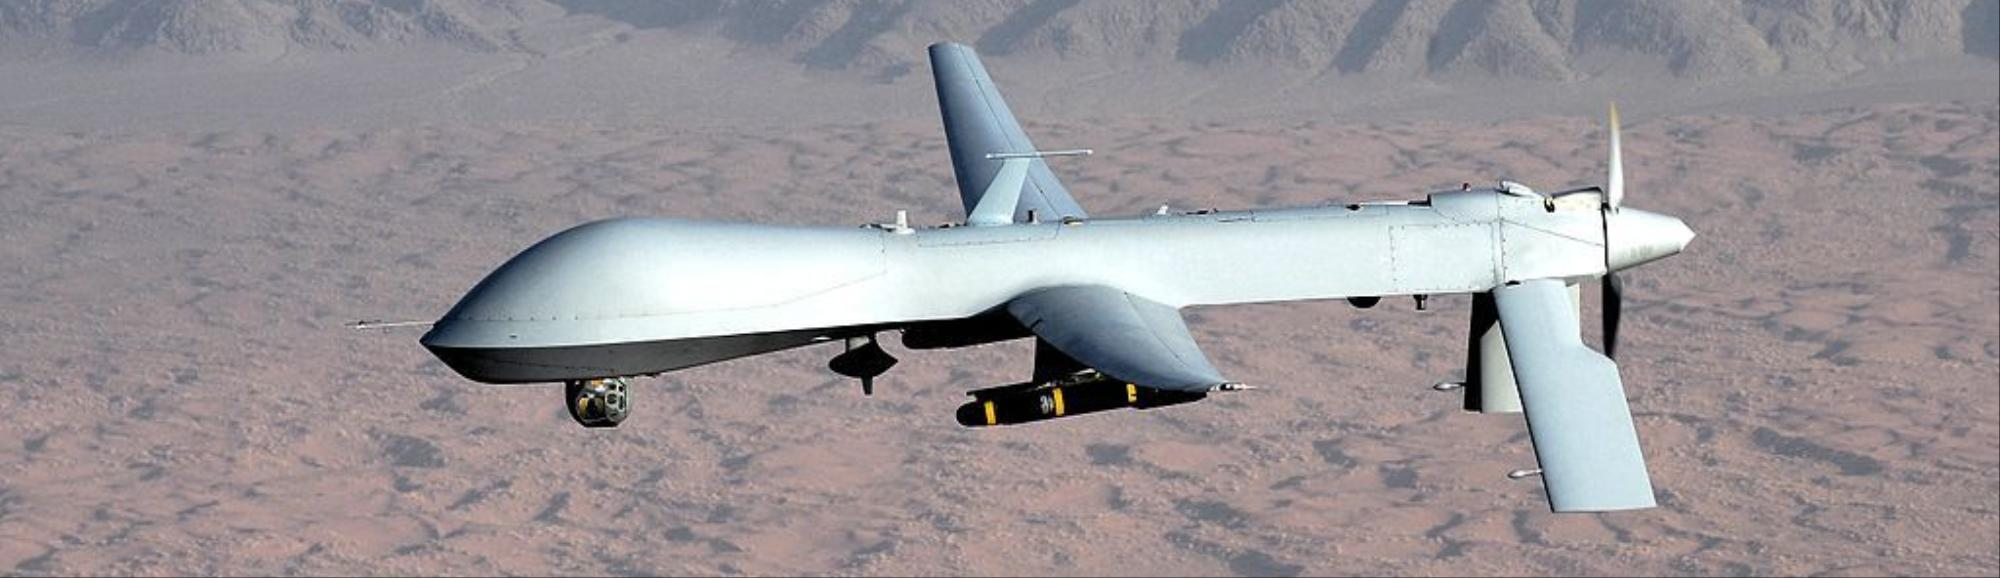 US Bombards Yemen With Drone Strikes, But the Policy Is Backfiring